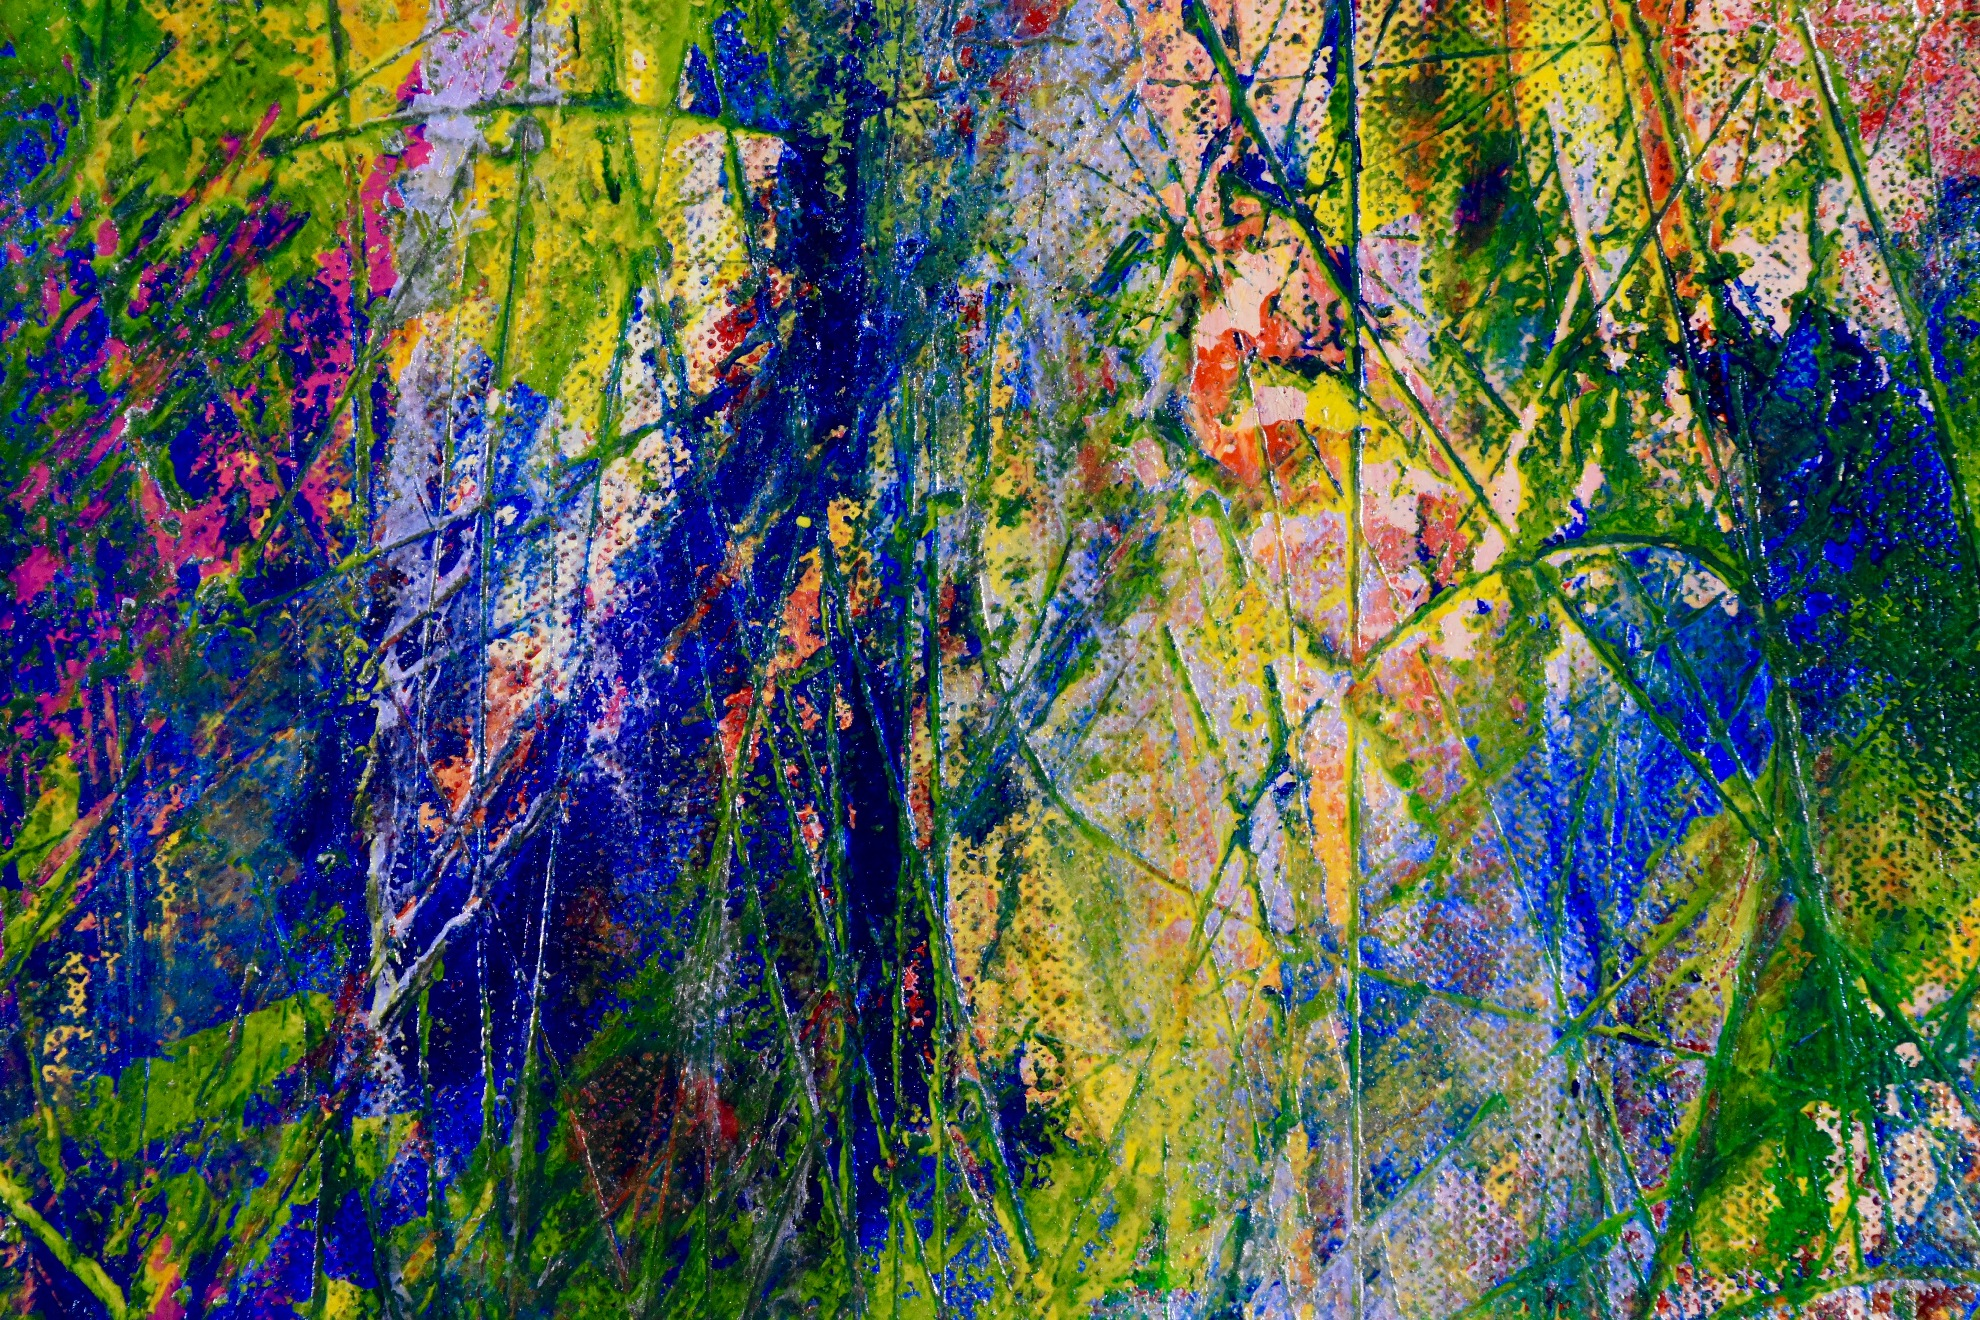 Detail - Enchanted Spectra